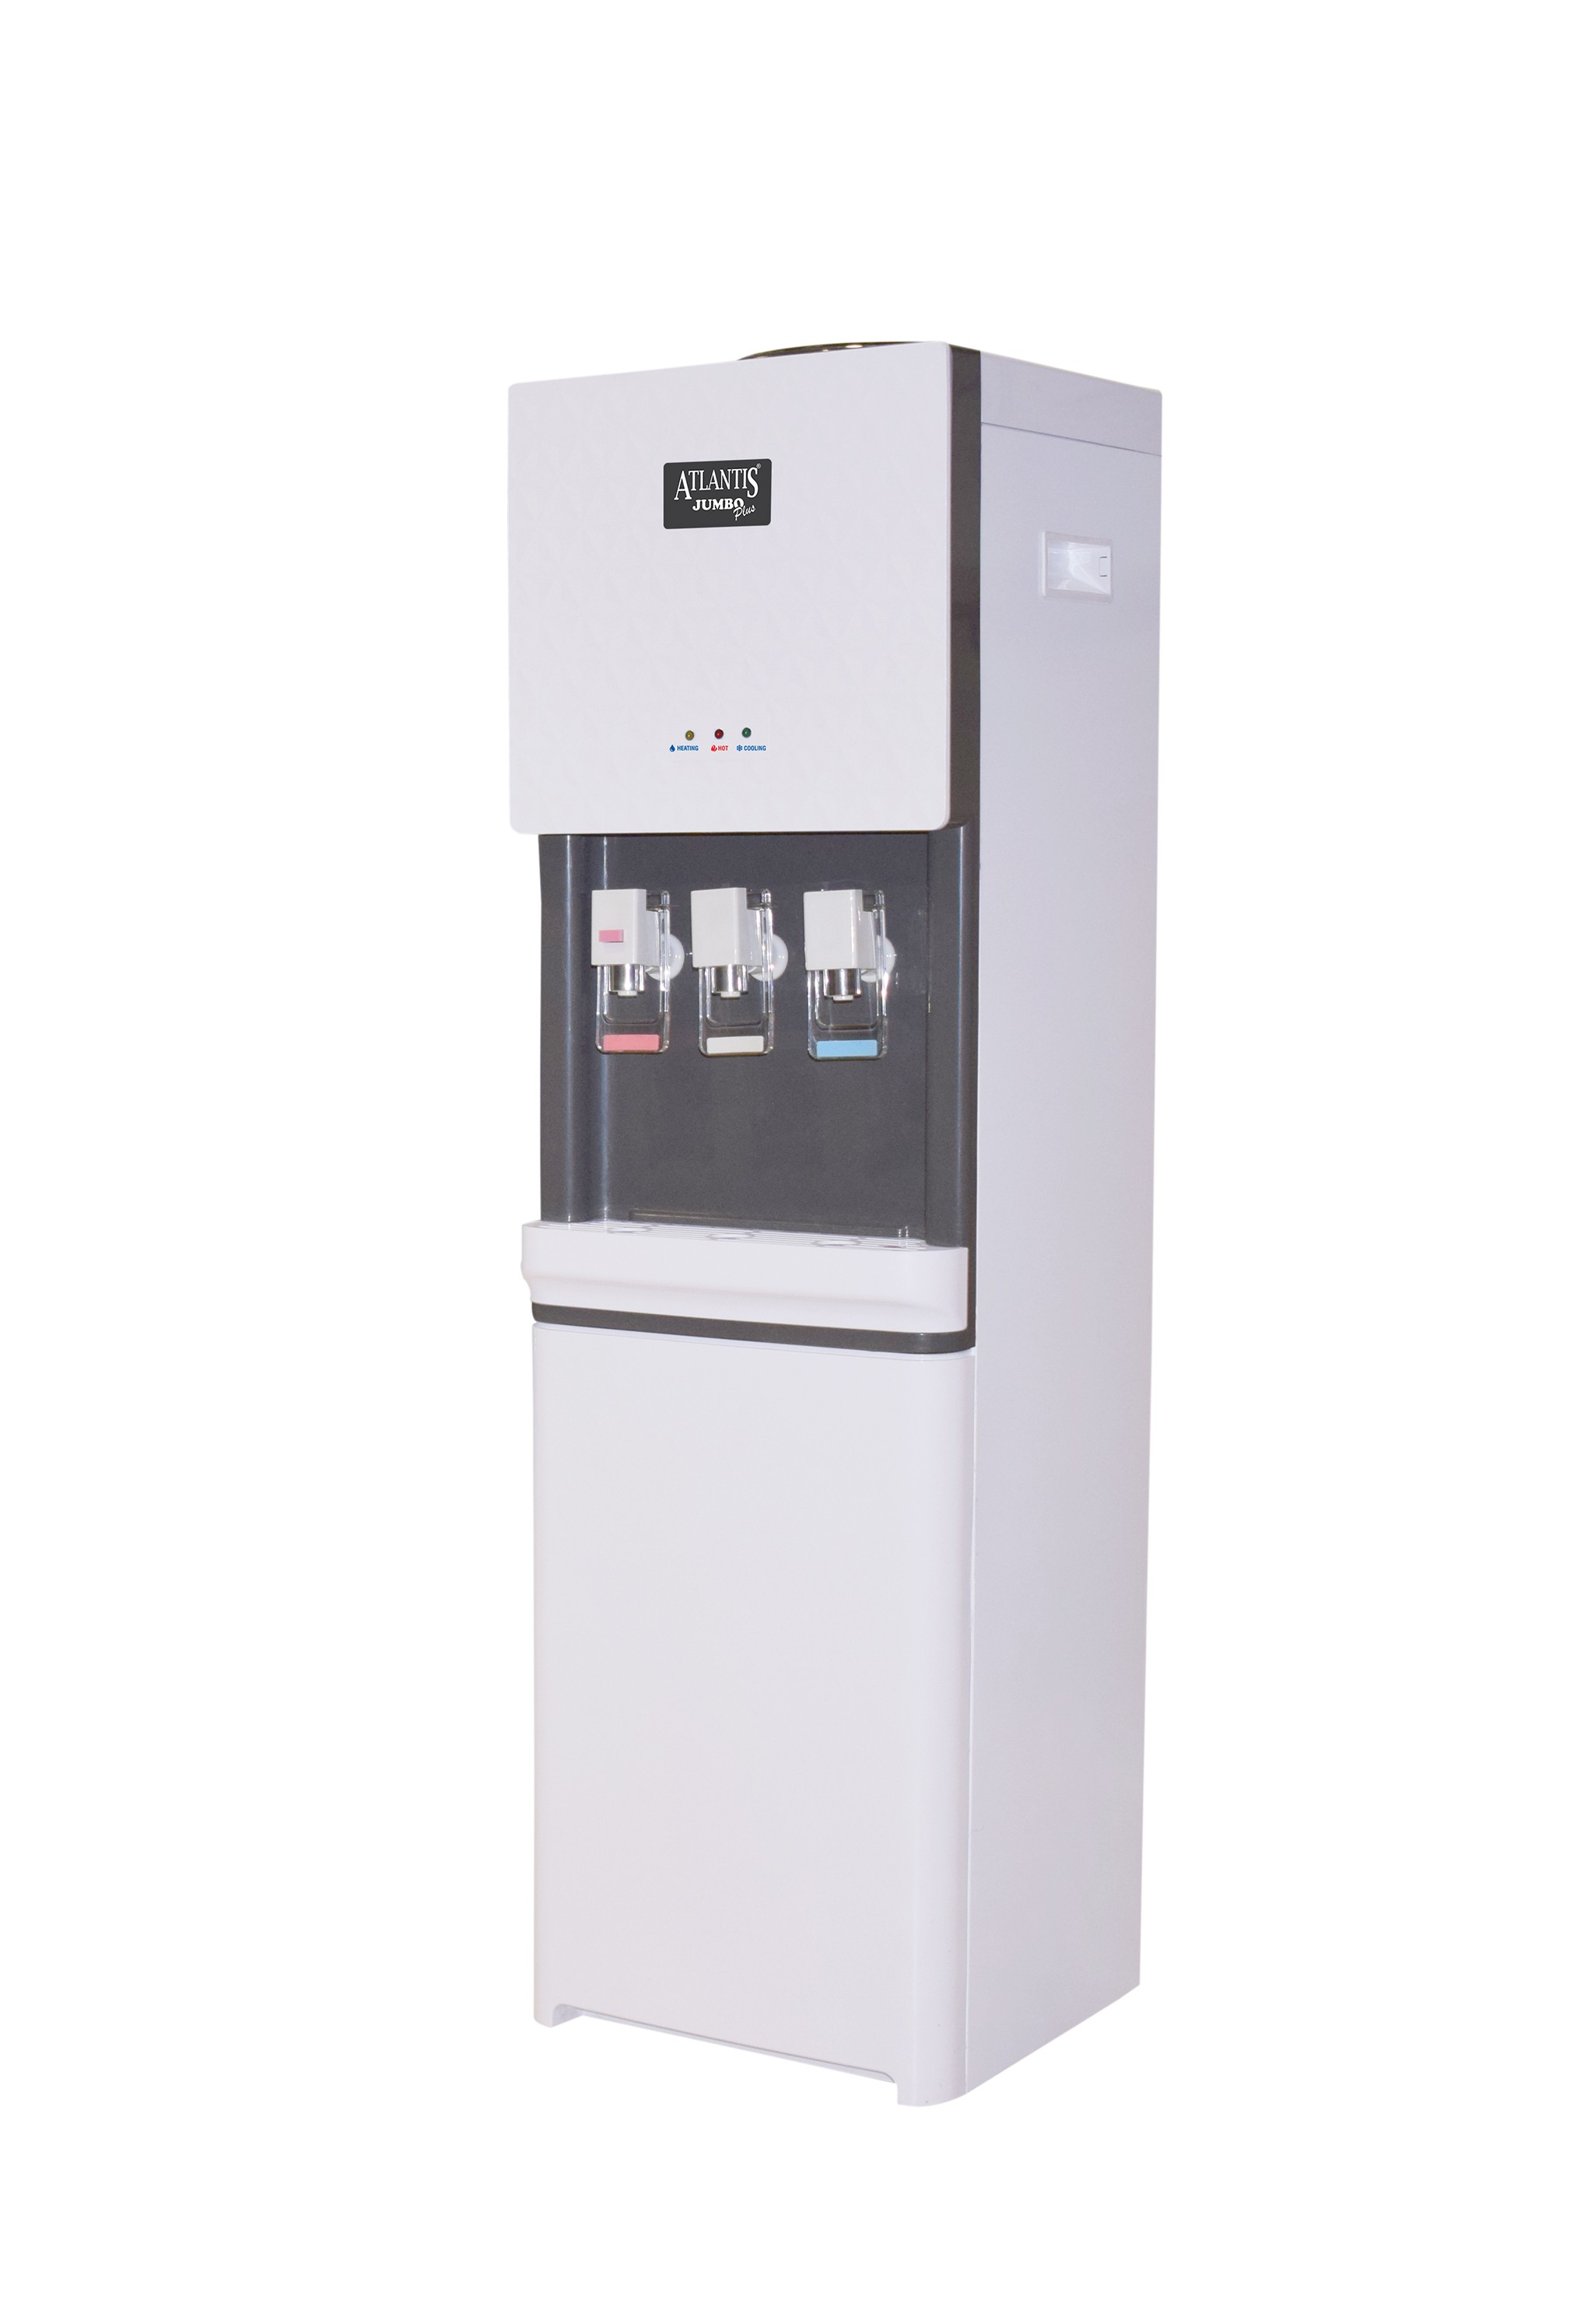 best water dispensers,water dispensers,Atlantis water dispensers | free Classified | Free Advertising | free classified ads